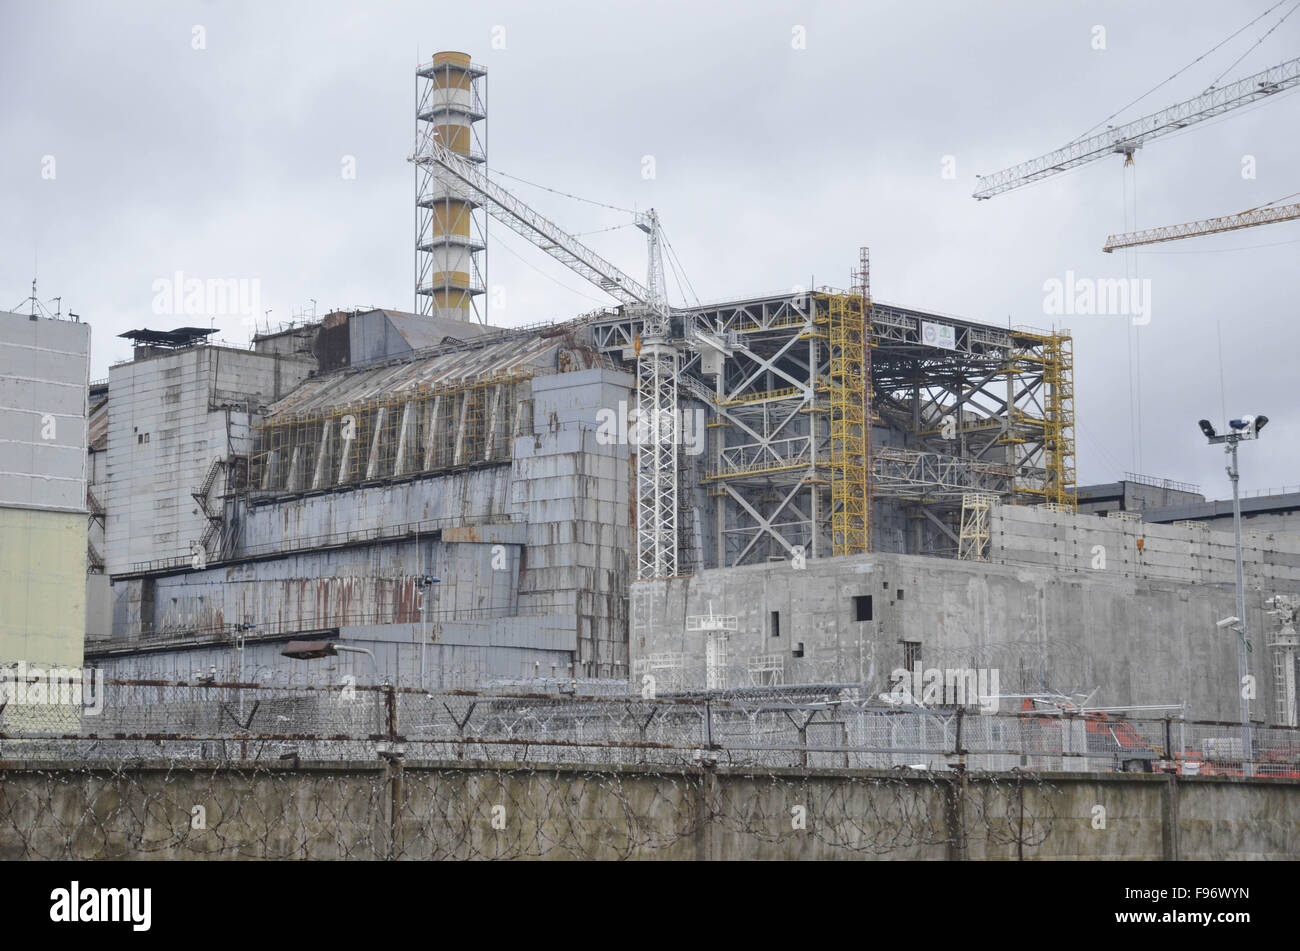 Dec. 14, 2015 - Chernobyl, Ukraine - New protective shelter at nuclear reactor at Chernobyl. (Credit Image: © - Stock Image